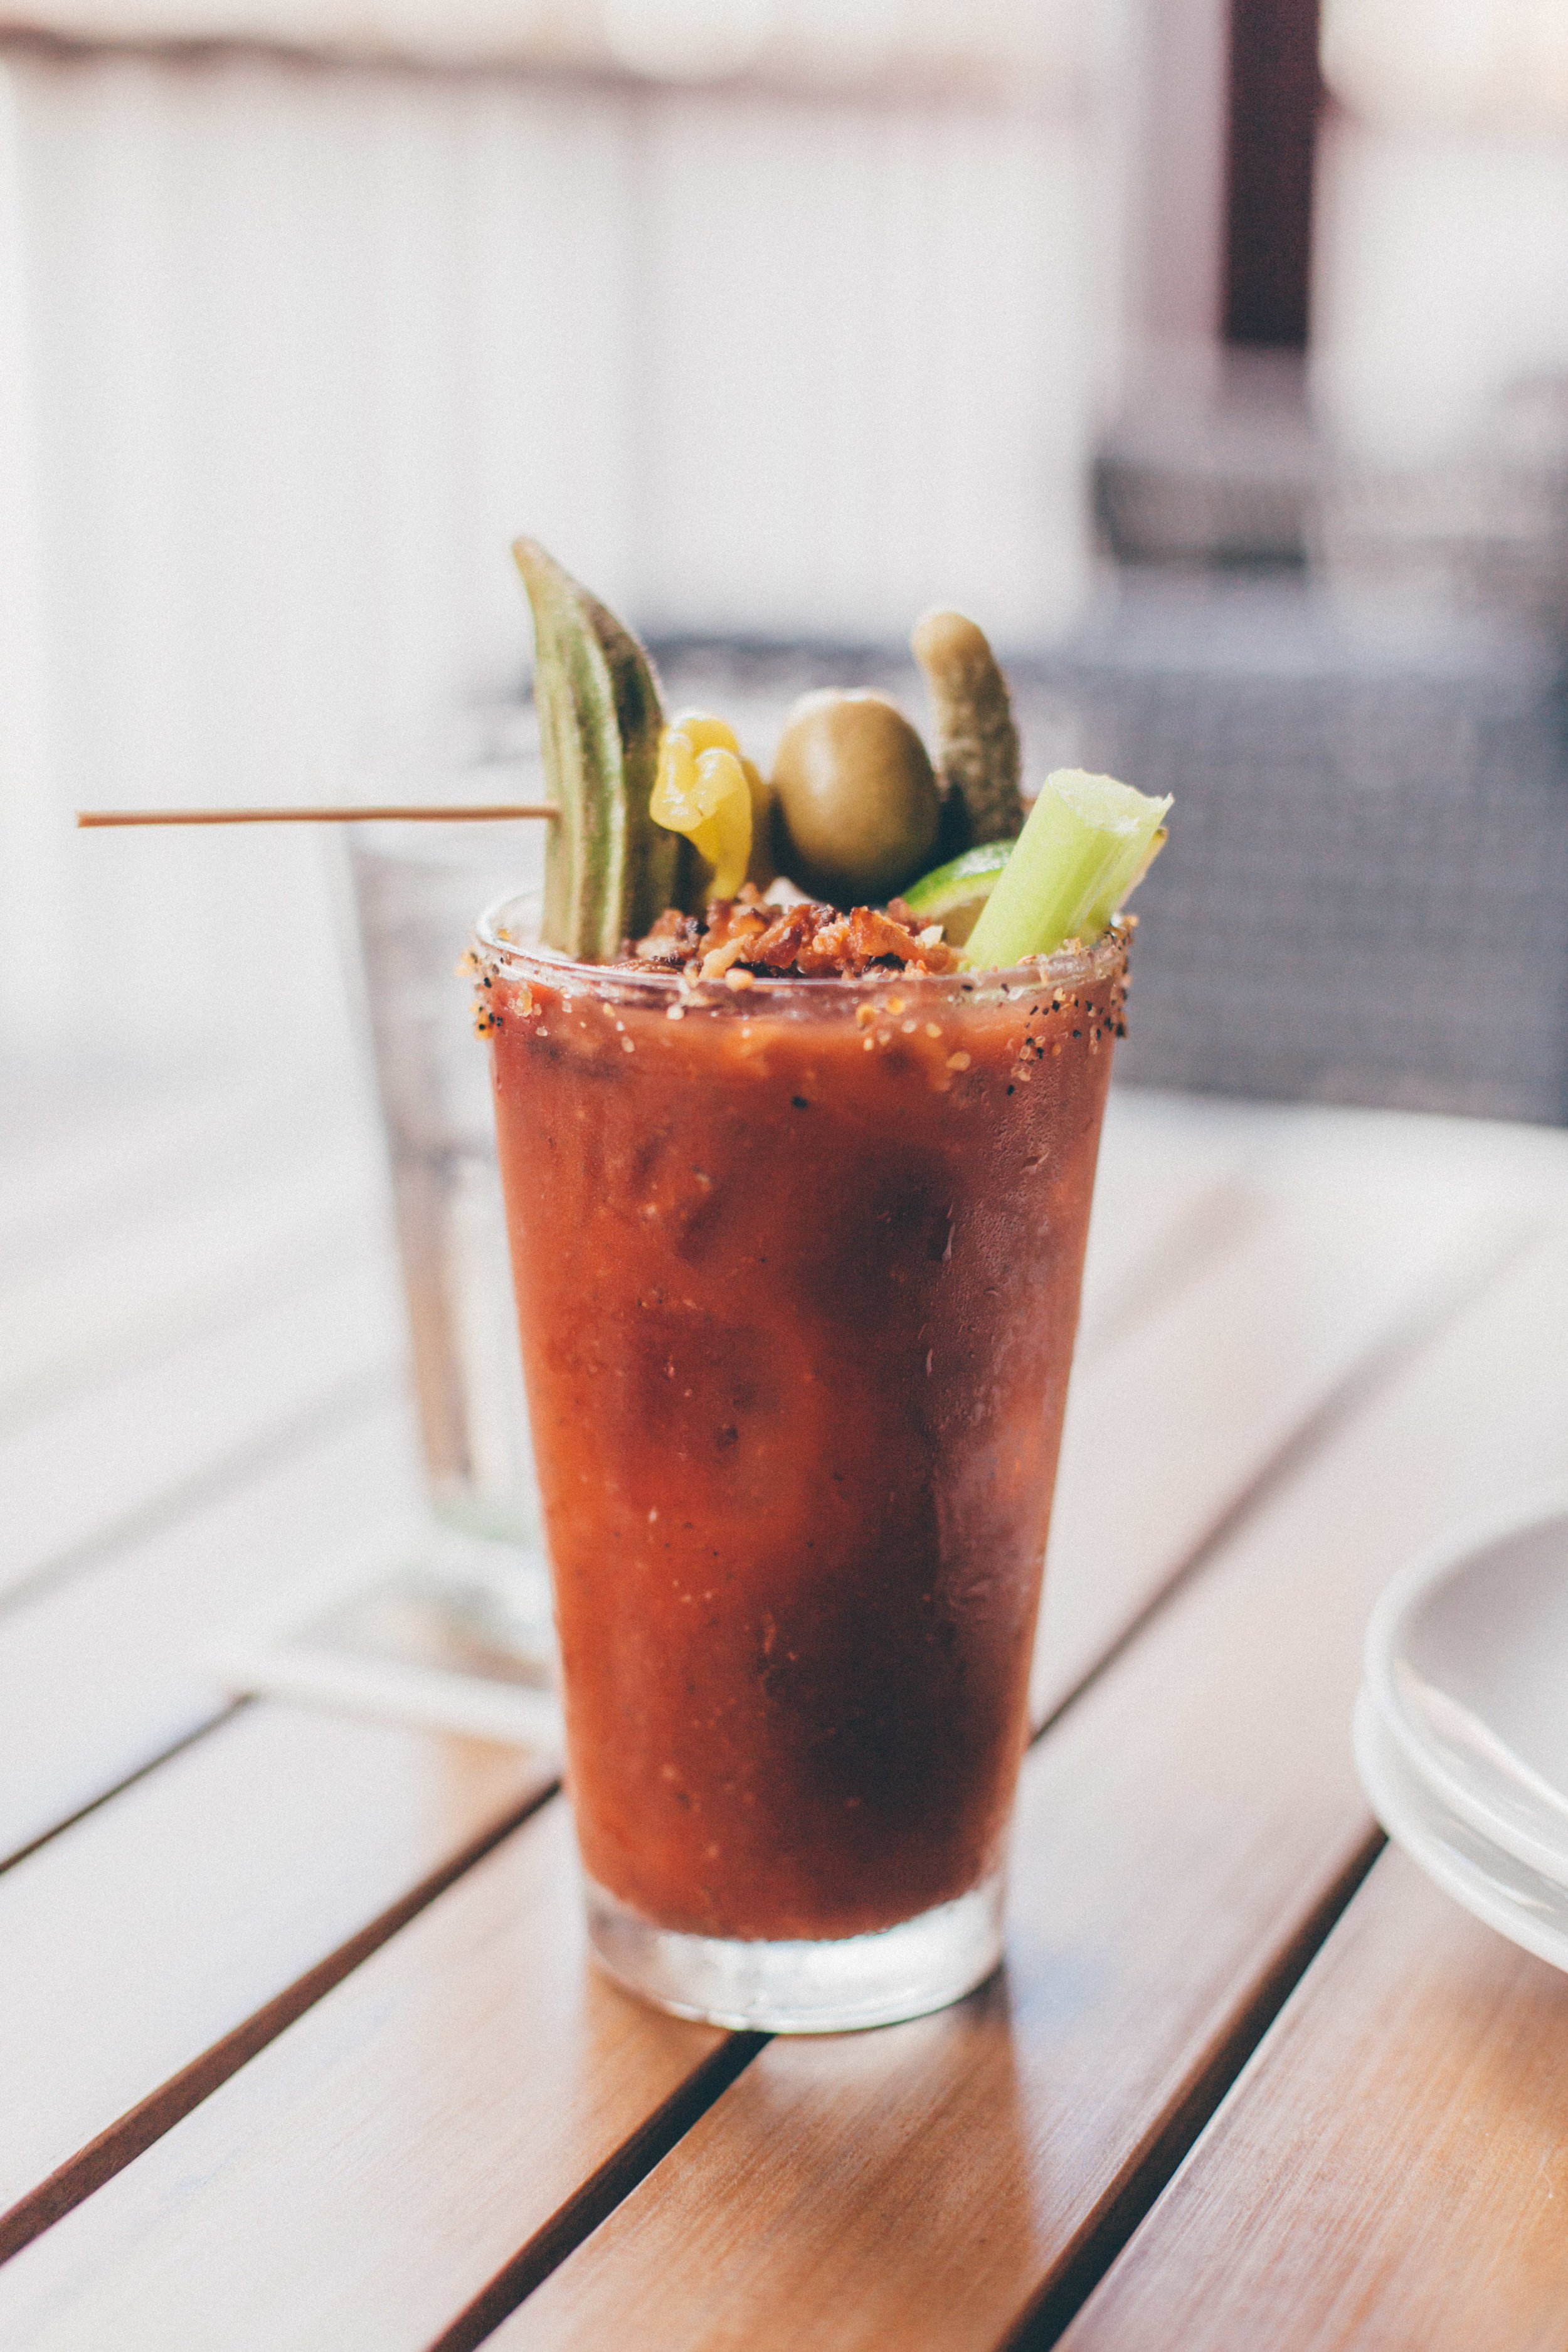 My personal Bloody Mary concoction - Zing Zang Bloody Mary mix, a little Worcestershire sauce, horseradish, Sriracha and bacon. Garnished with pickled okra, pepperoncini, olive and dill pickle, a celery stalk and lime.